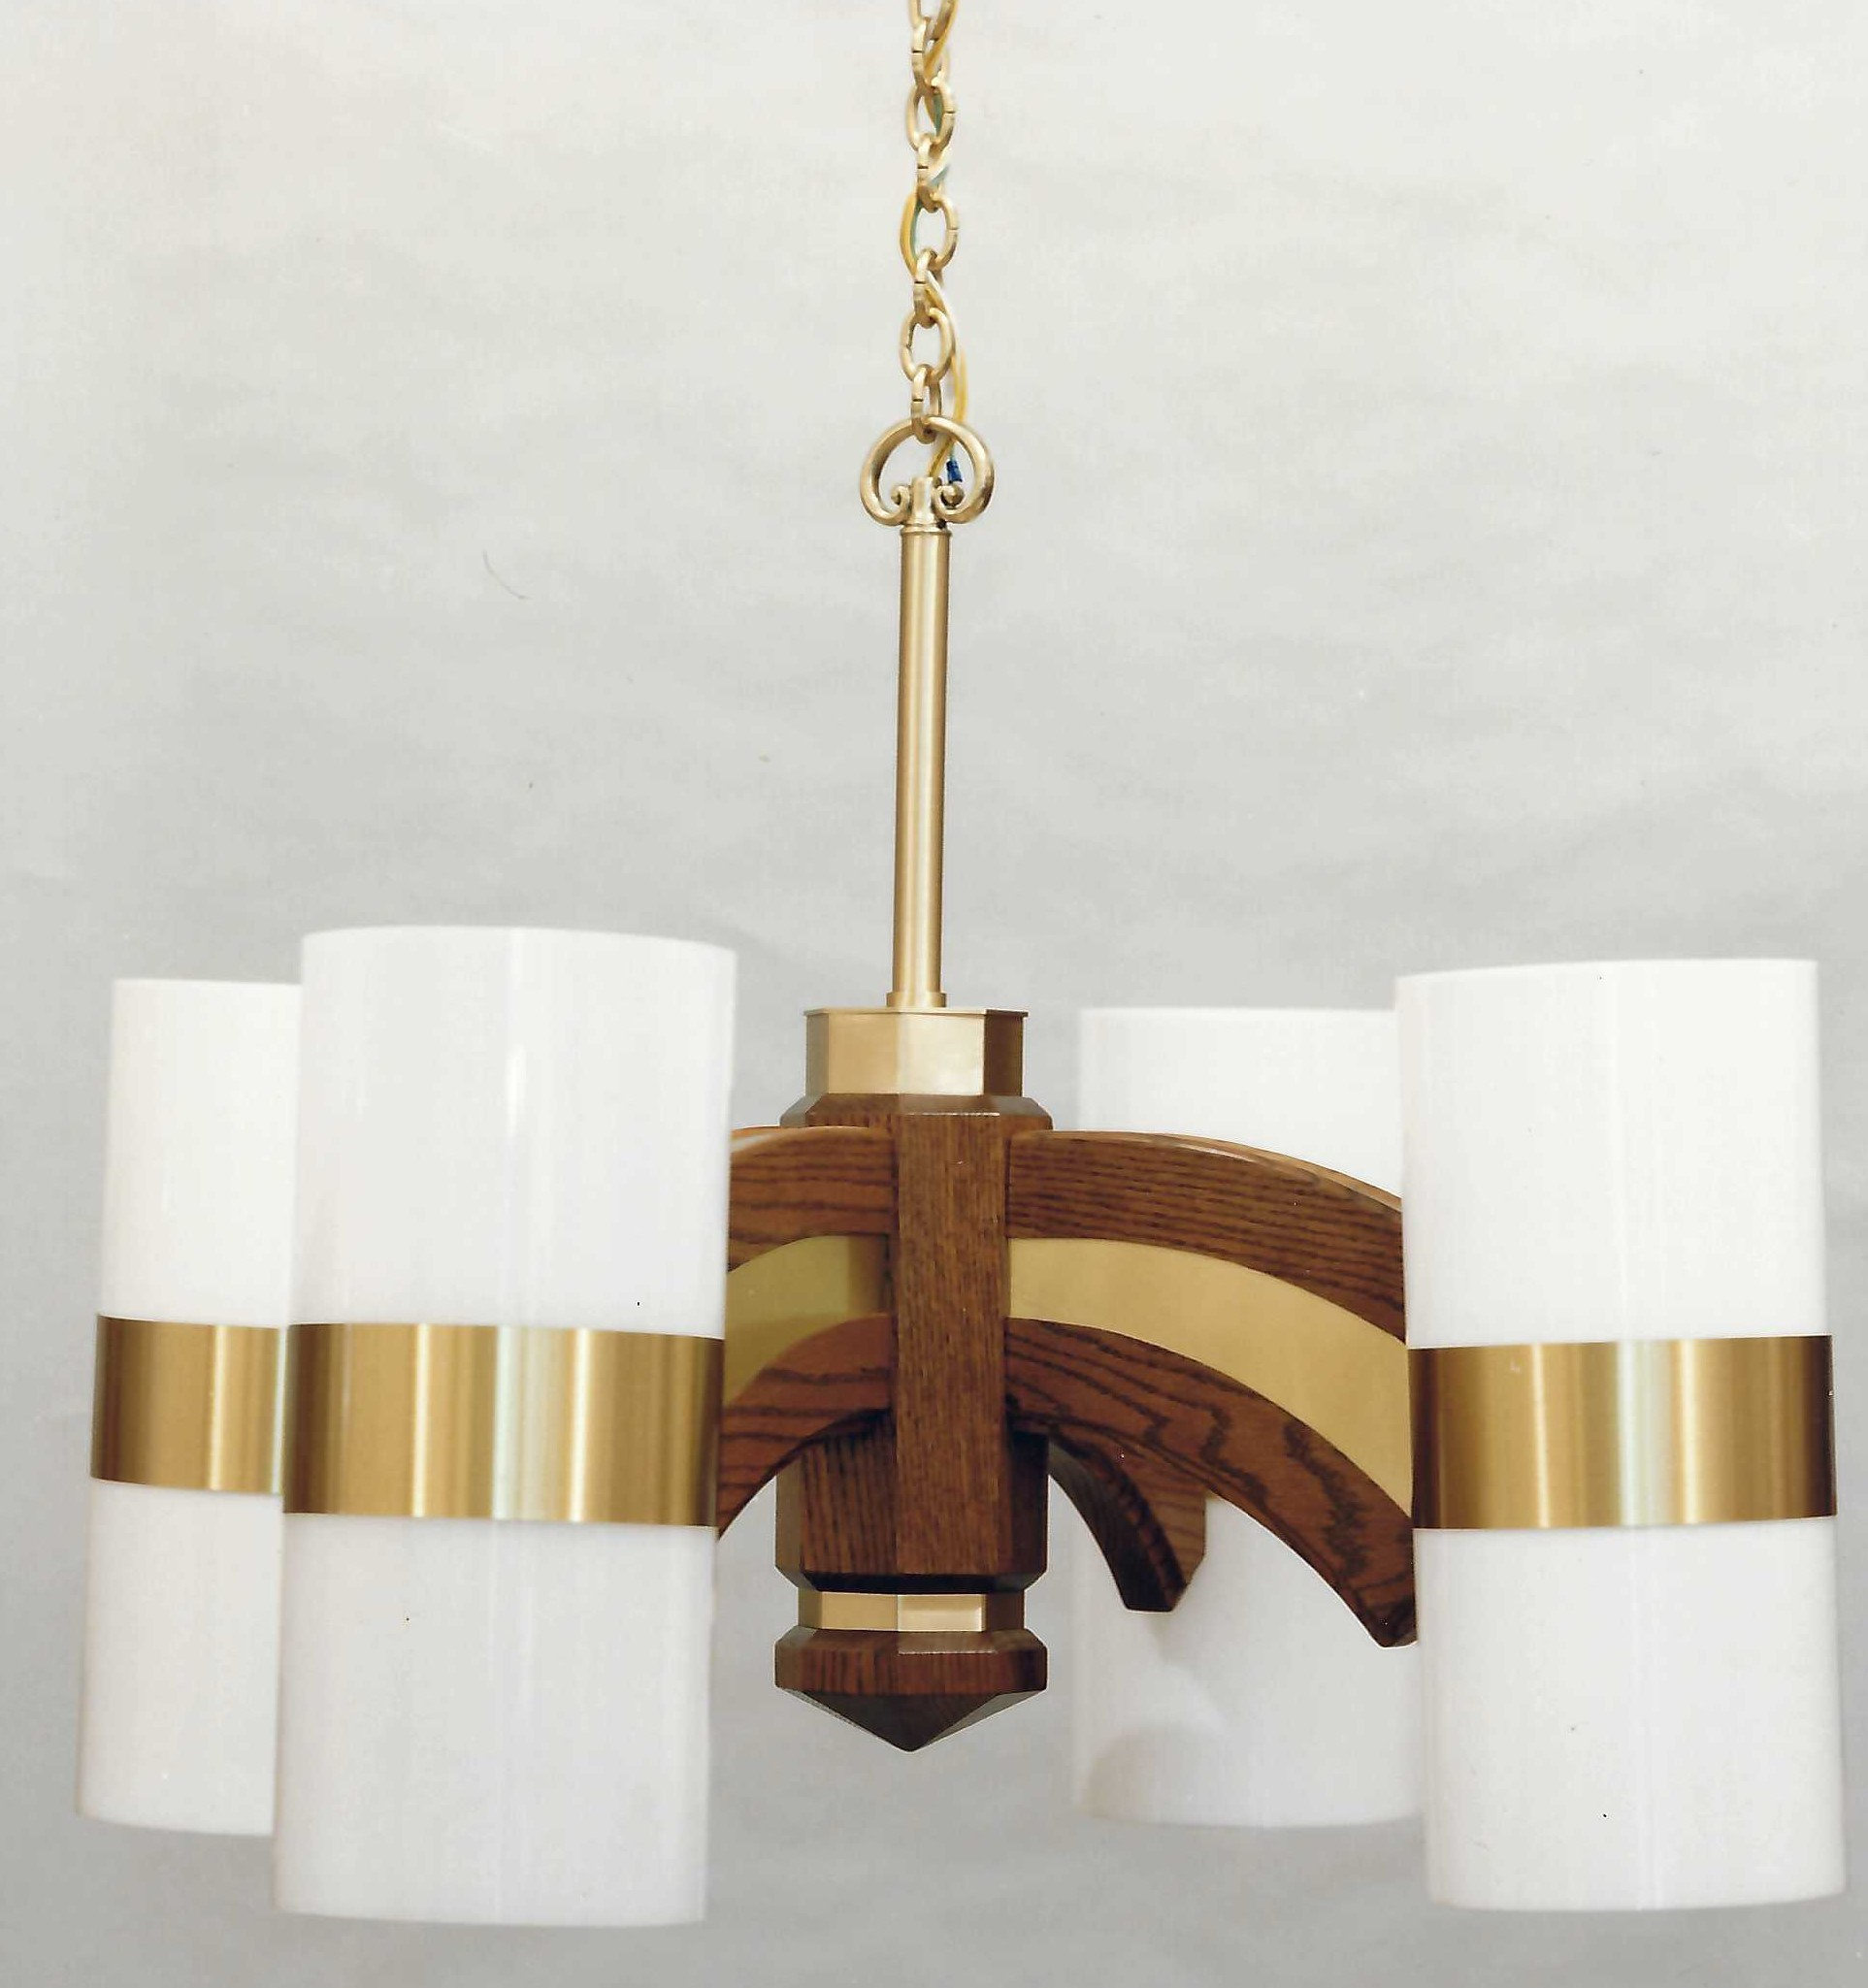 custom wood lighting1.jpg